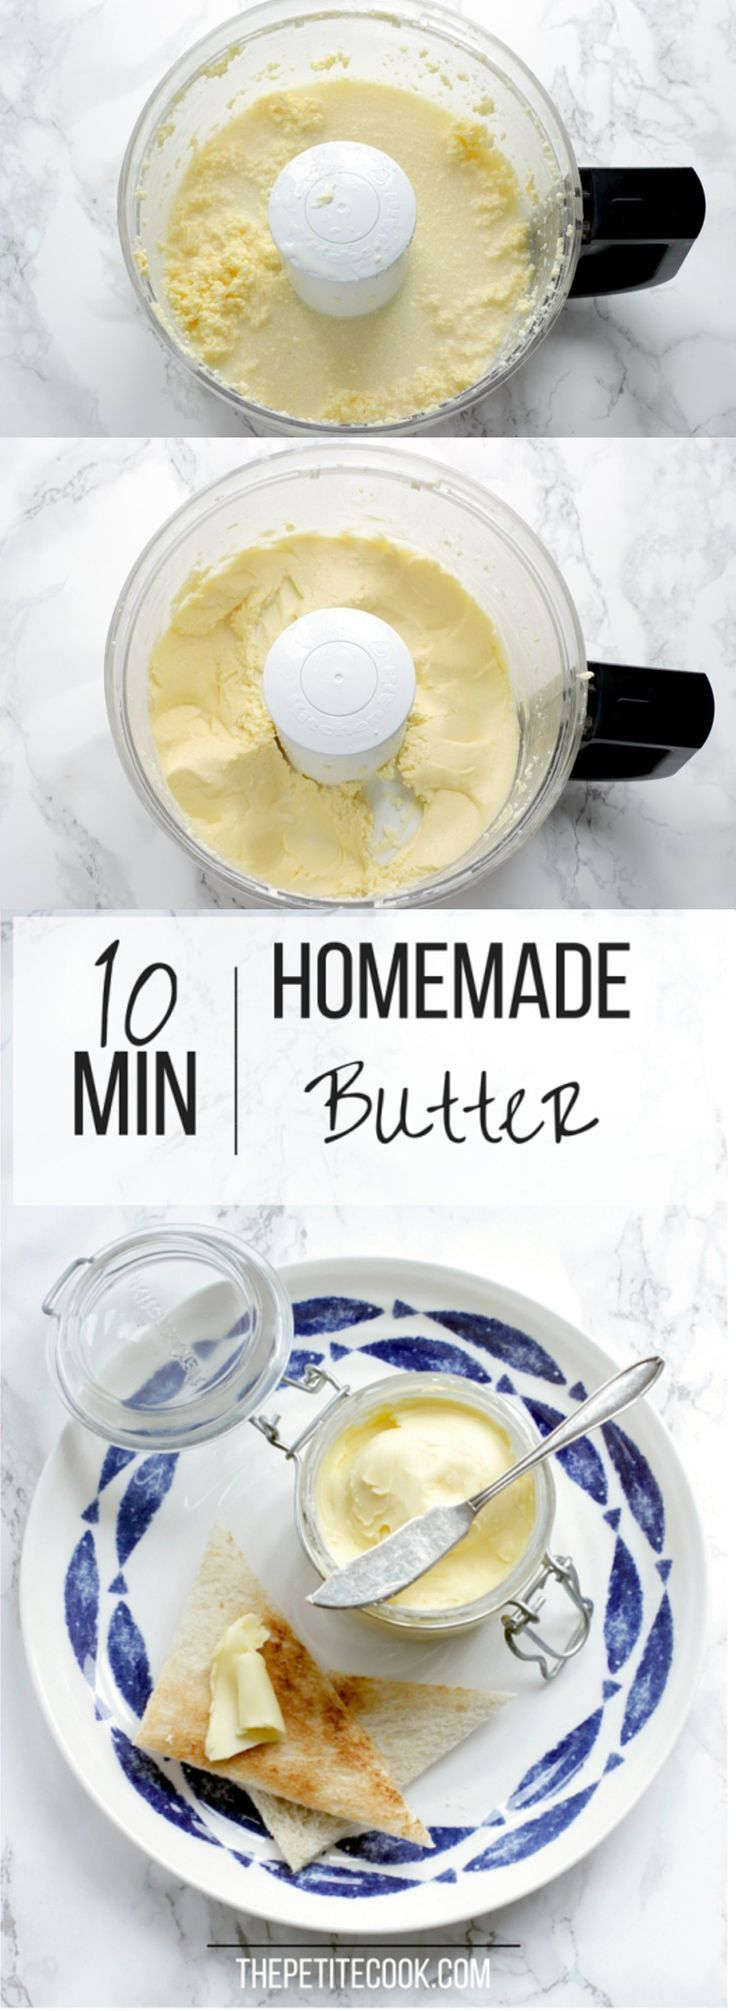 How To Make Homemade Butter - Ready in 10 minutes  with just 1 ingredient, making your own butter is easy, fun and tastes so much better! Easy step-by-step tutorial from thepetitecook.com